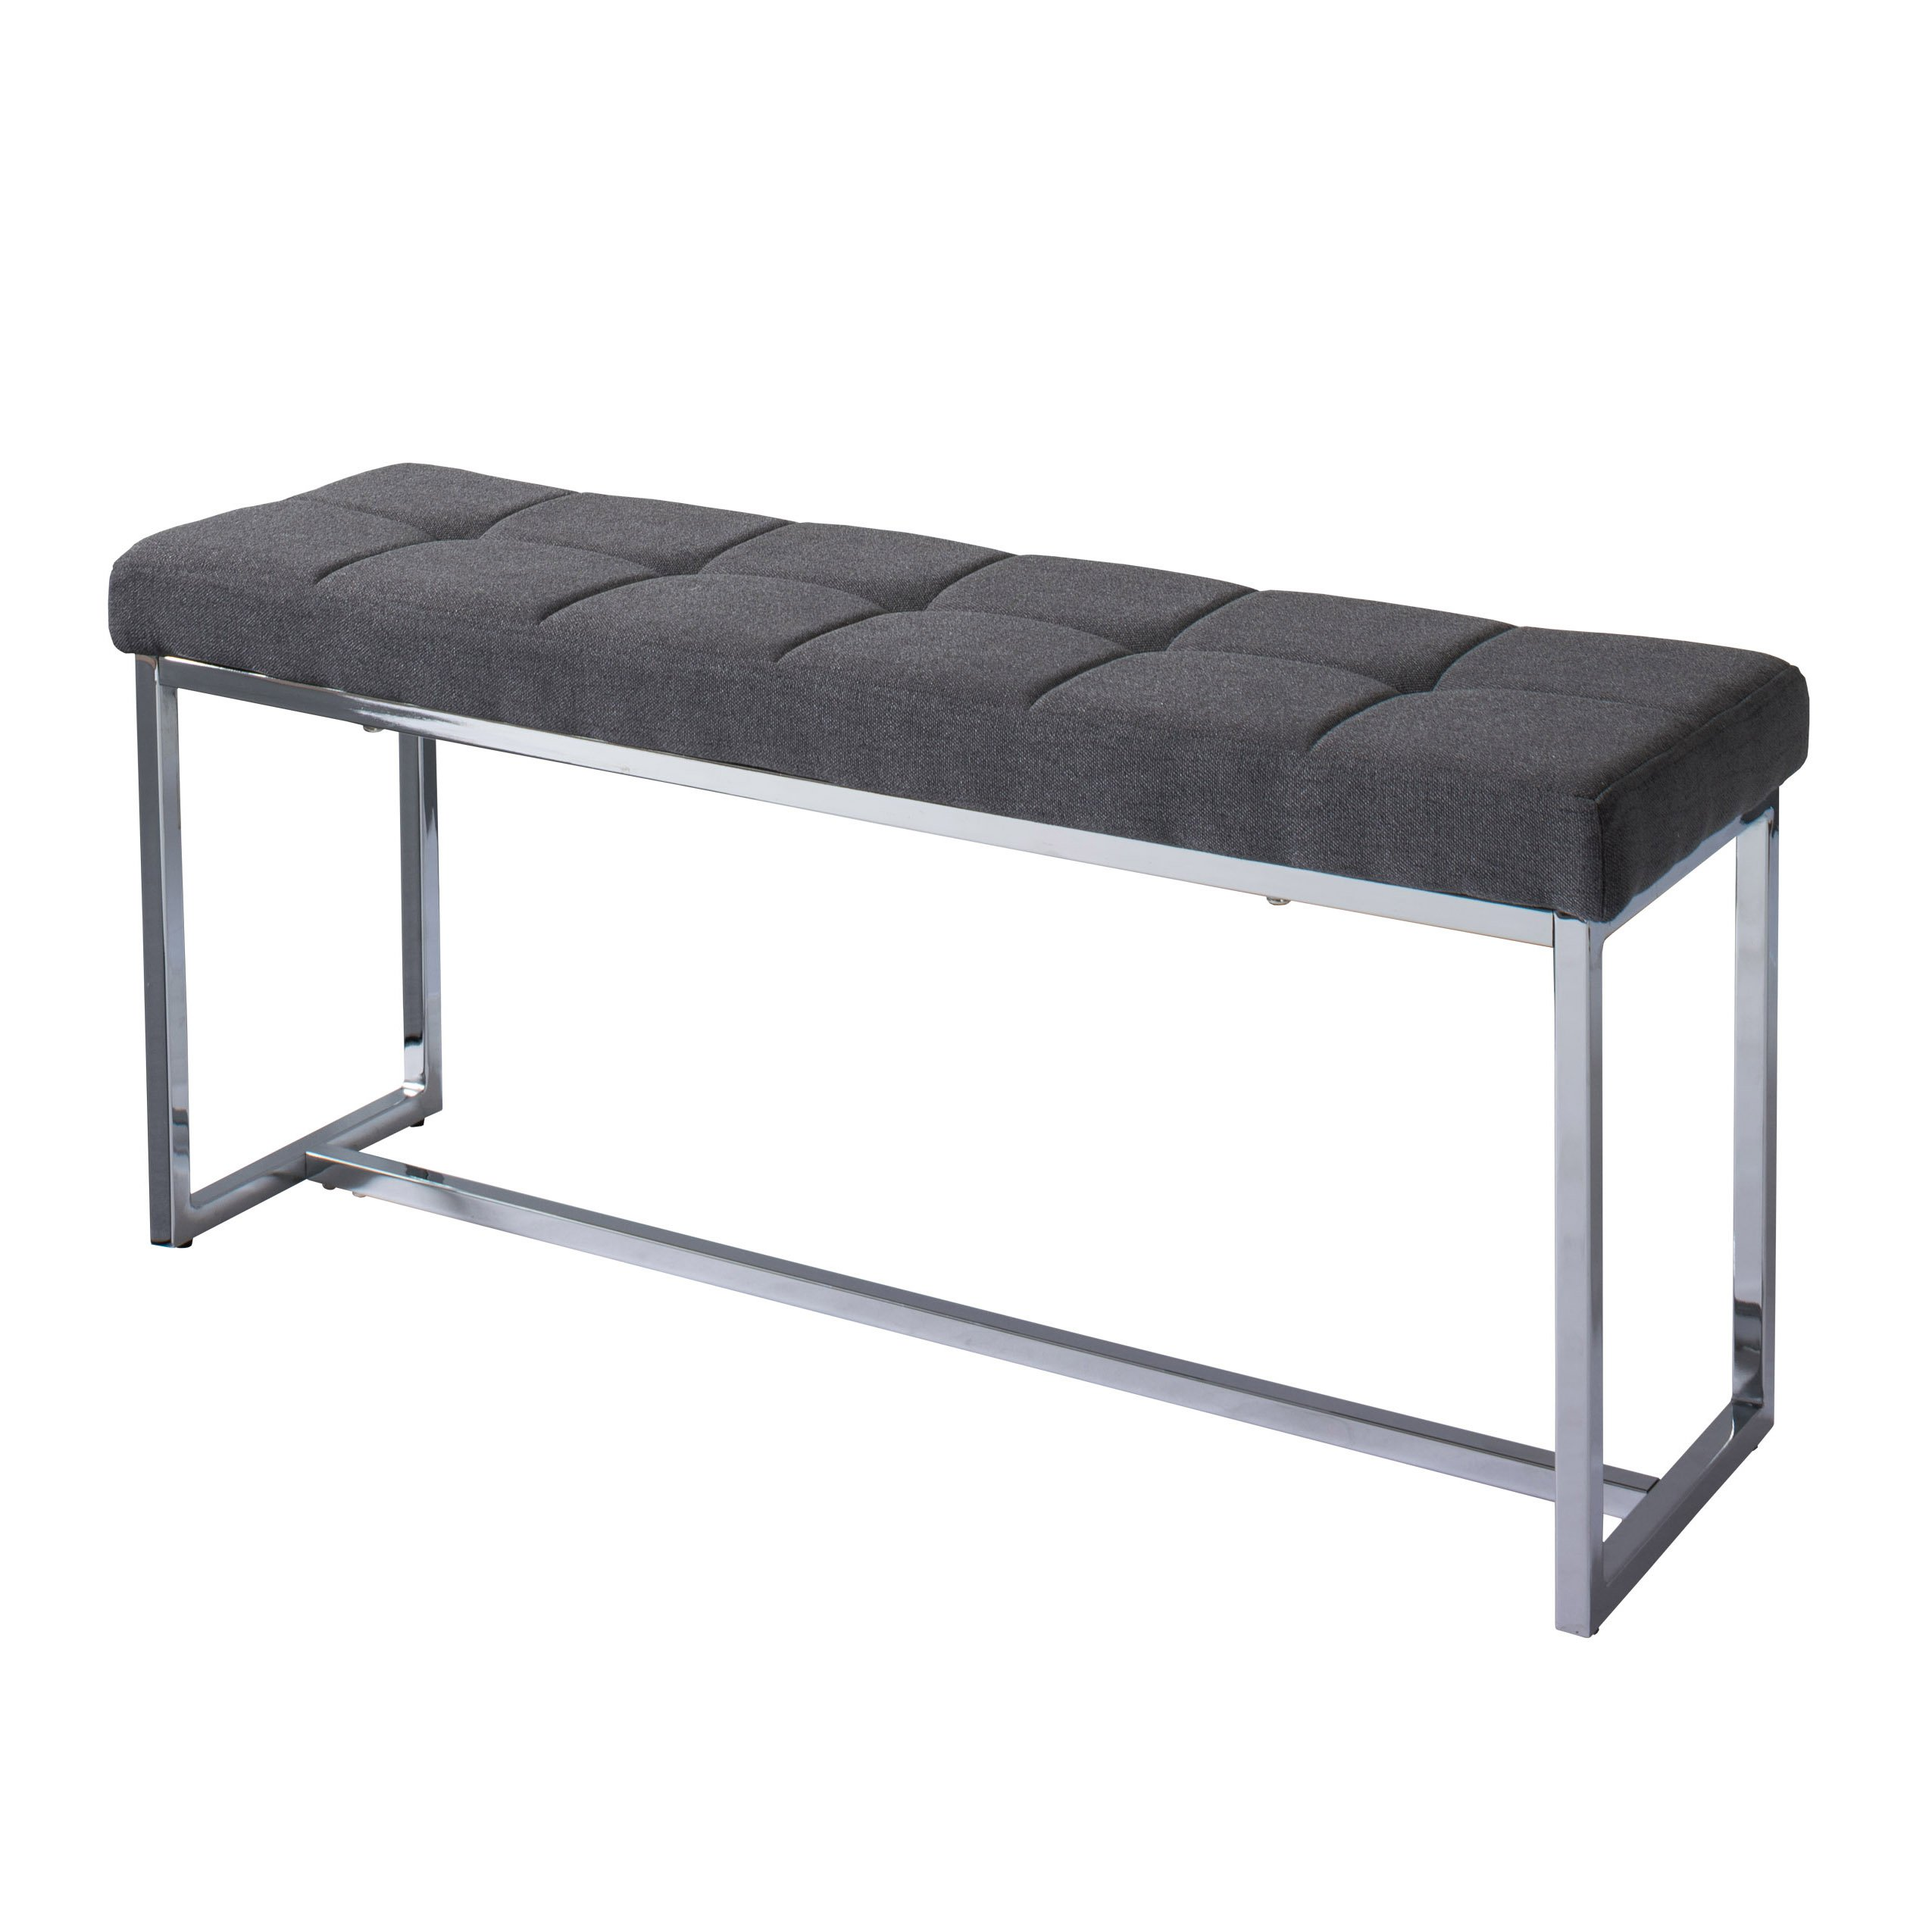 CorLiving LDF-161-O Huntington Bench Grey by CorLiving (Image #1)